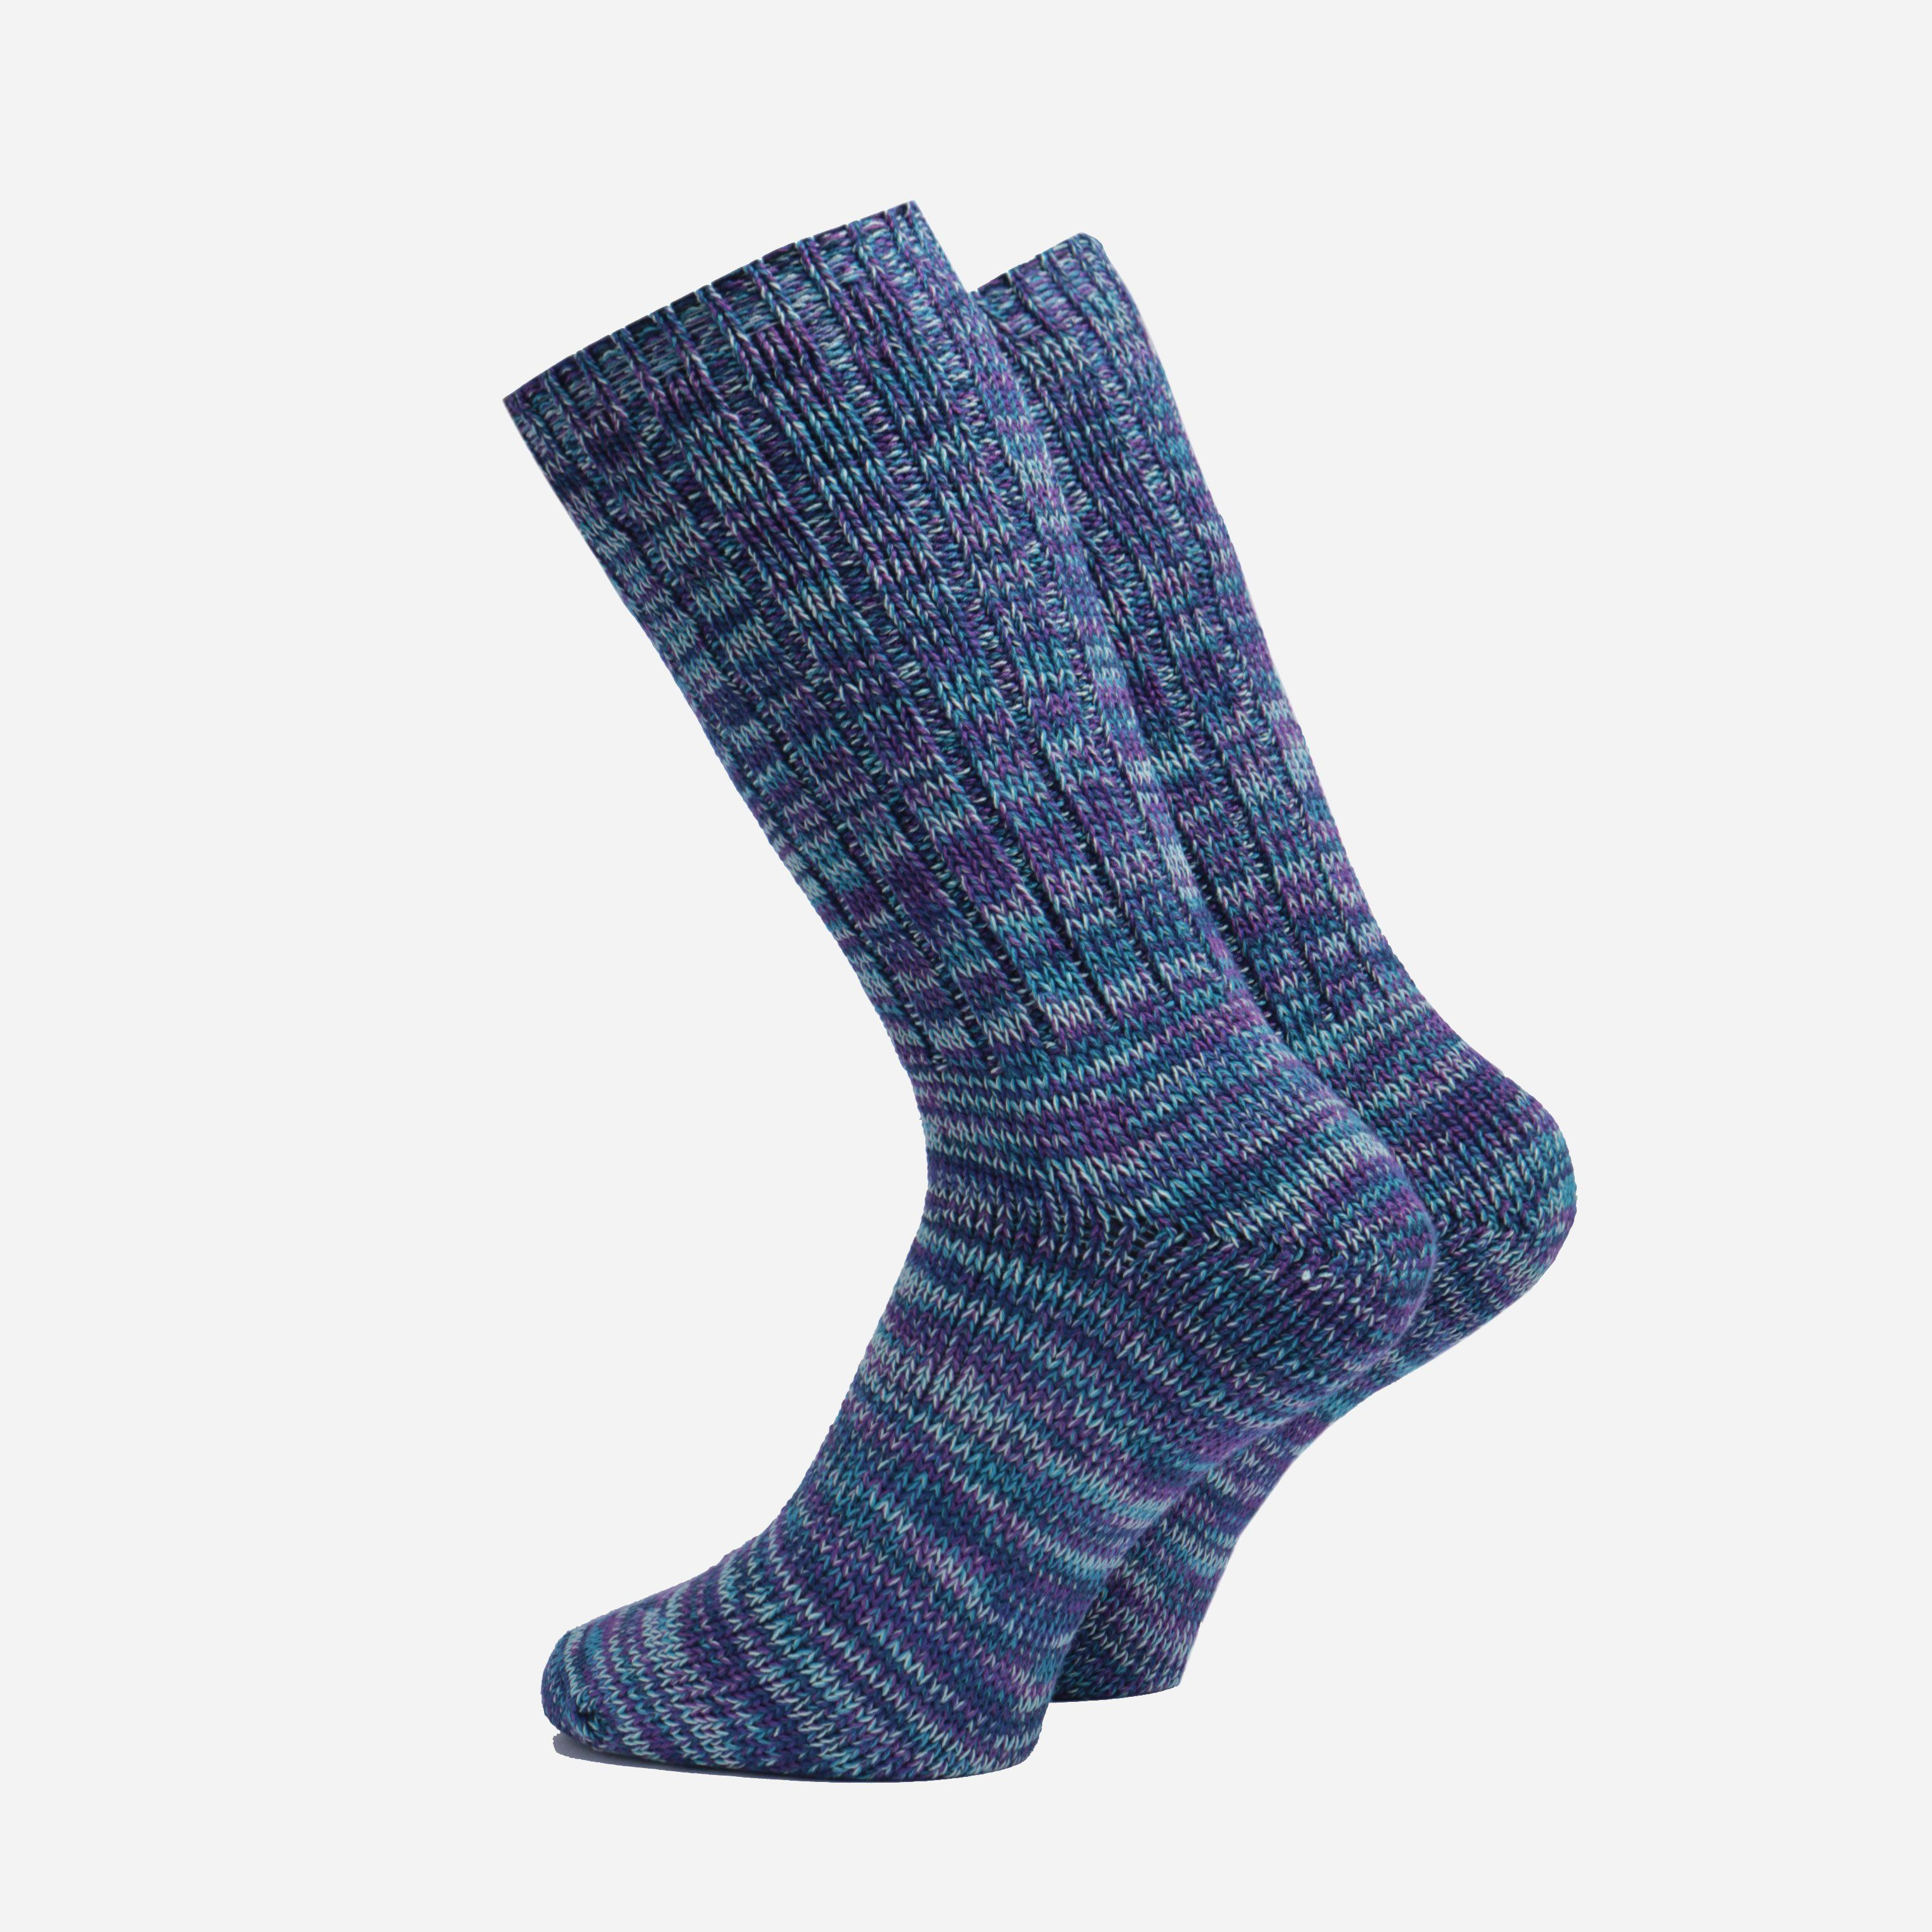 Anonymous Ism 15034900 5 COL MIX CREW SOCKS